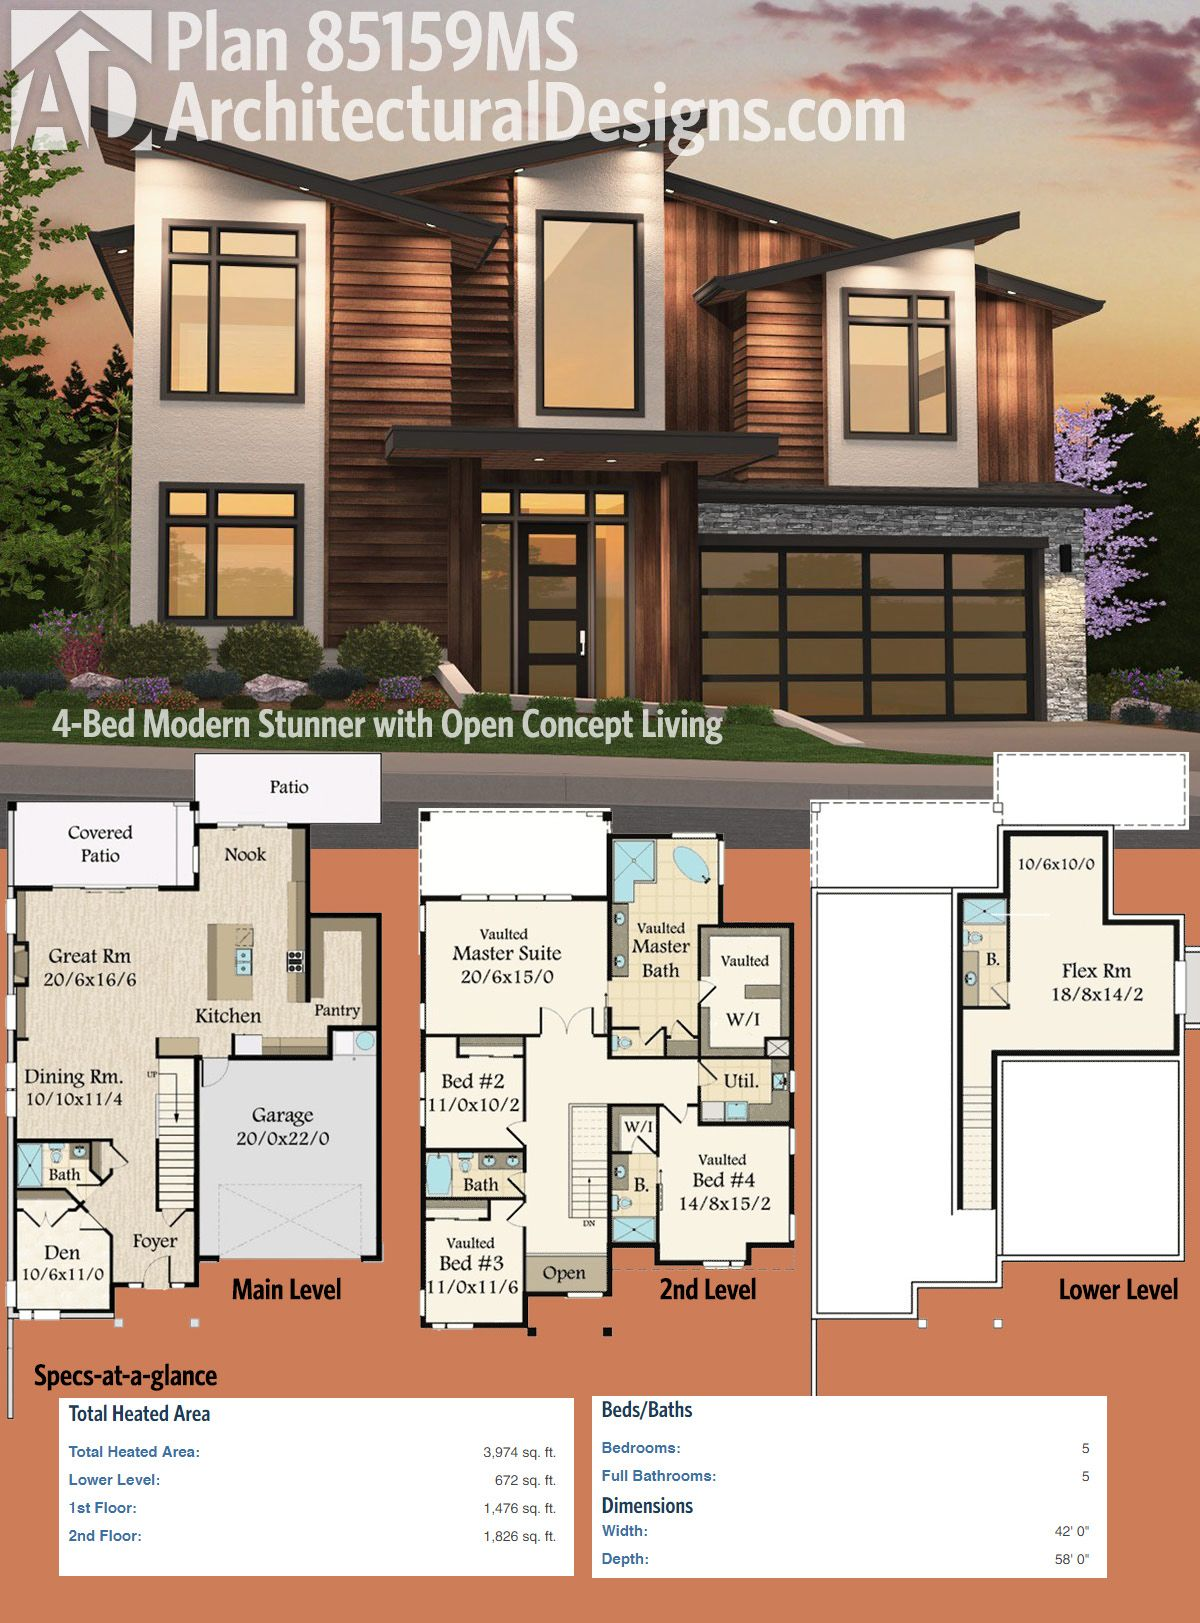 plan 85159ms 4 bed modern stunner with lower level flex 60094